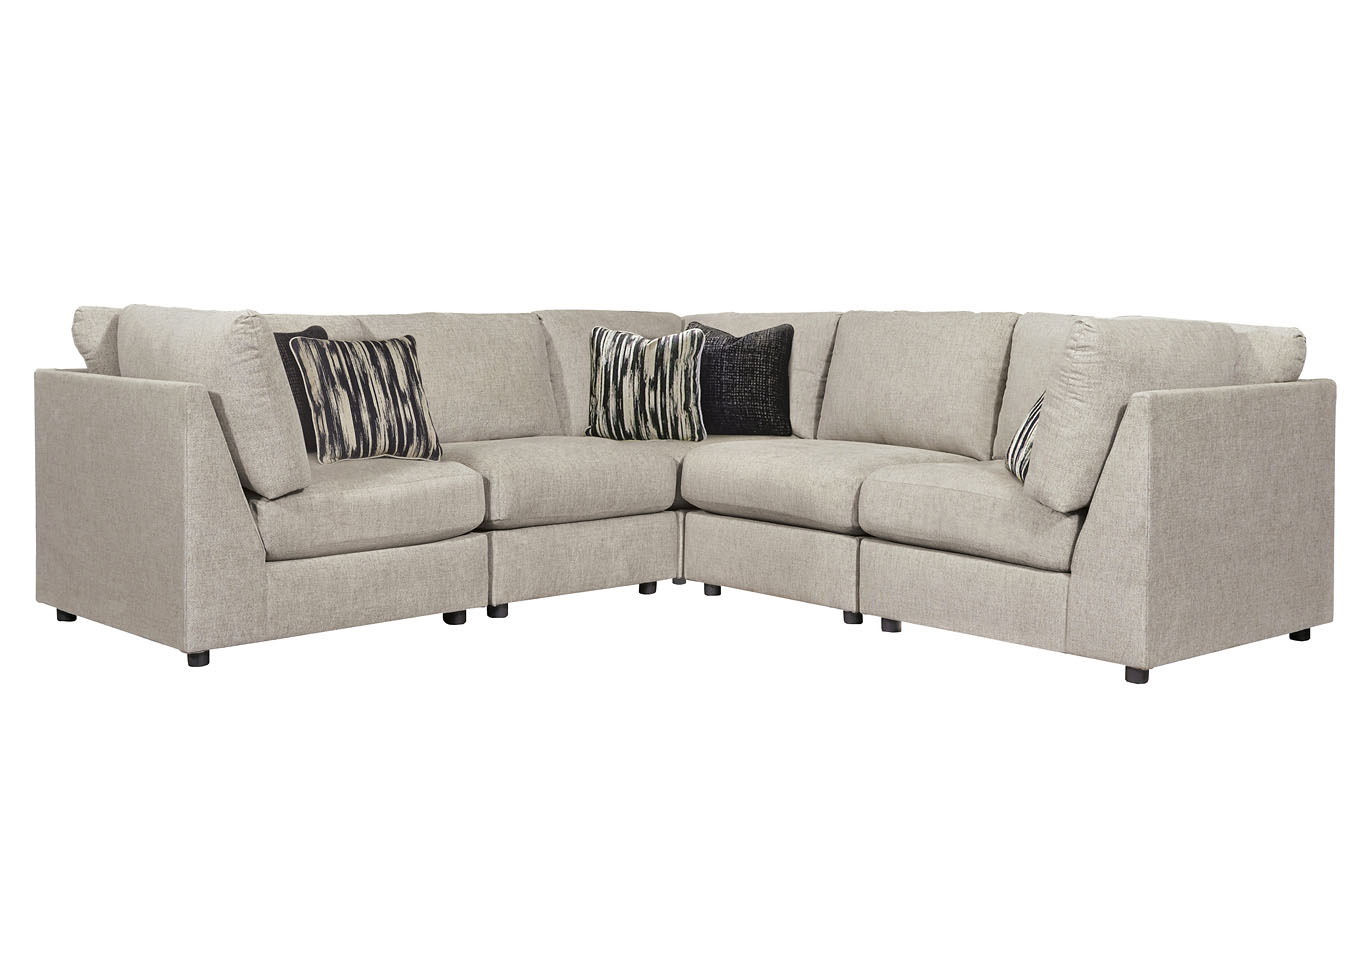 Kellway Bisque Sectional,Signature Design By Ashley